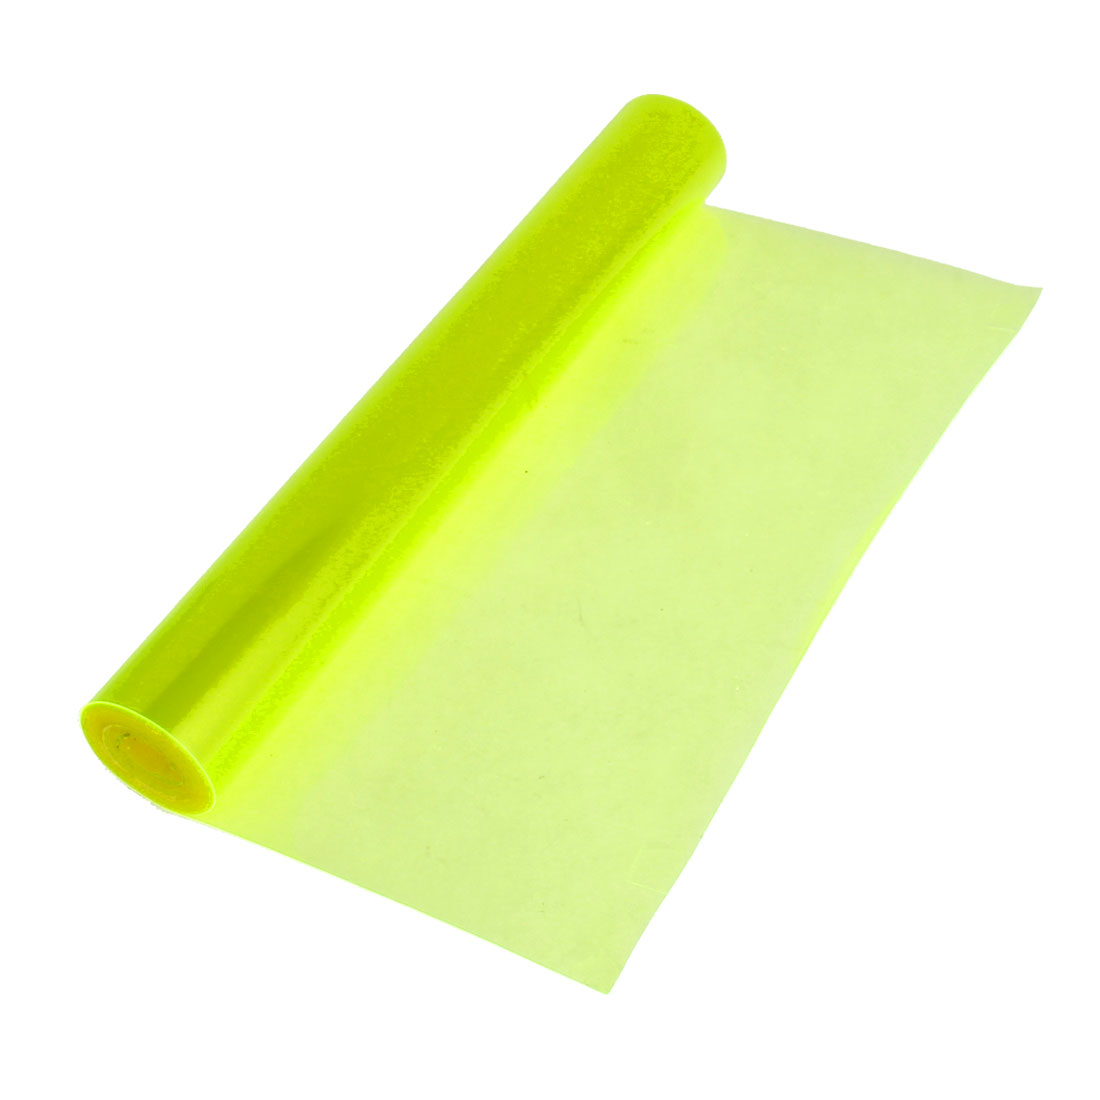 450cm x 30cm Light Green Headlight Film Sticker Protector for Car Auto